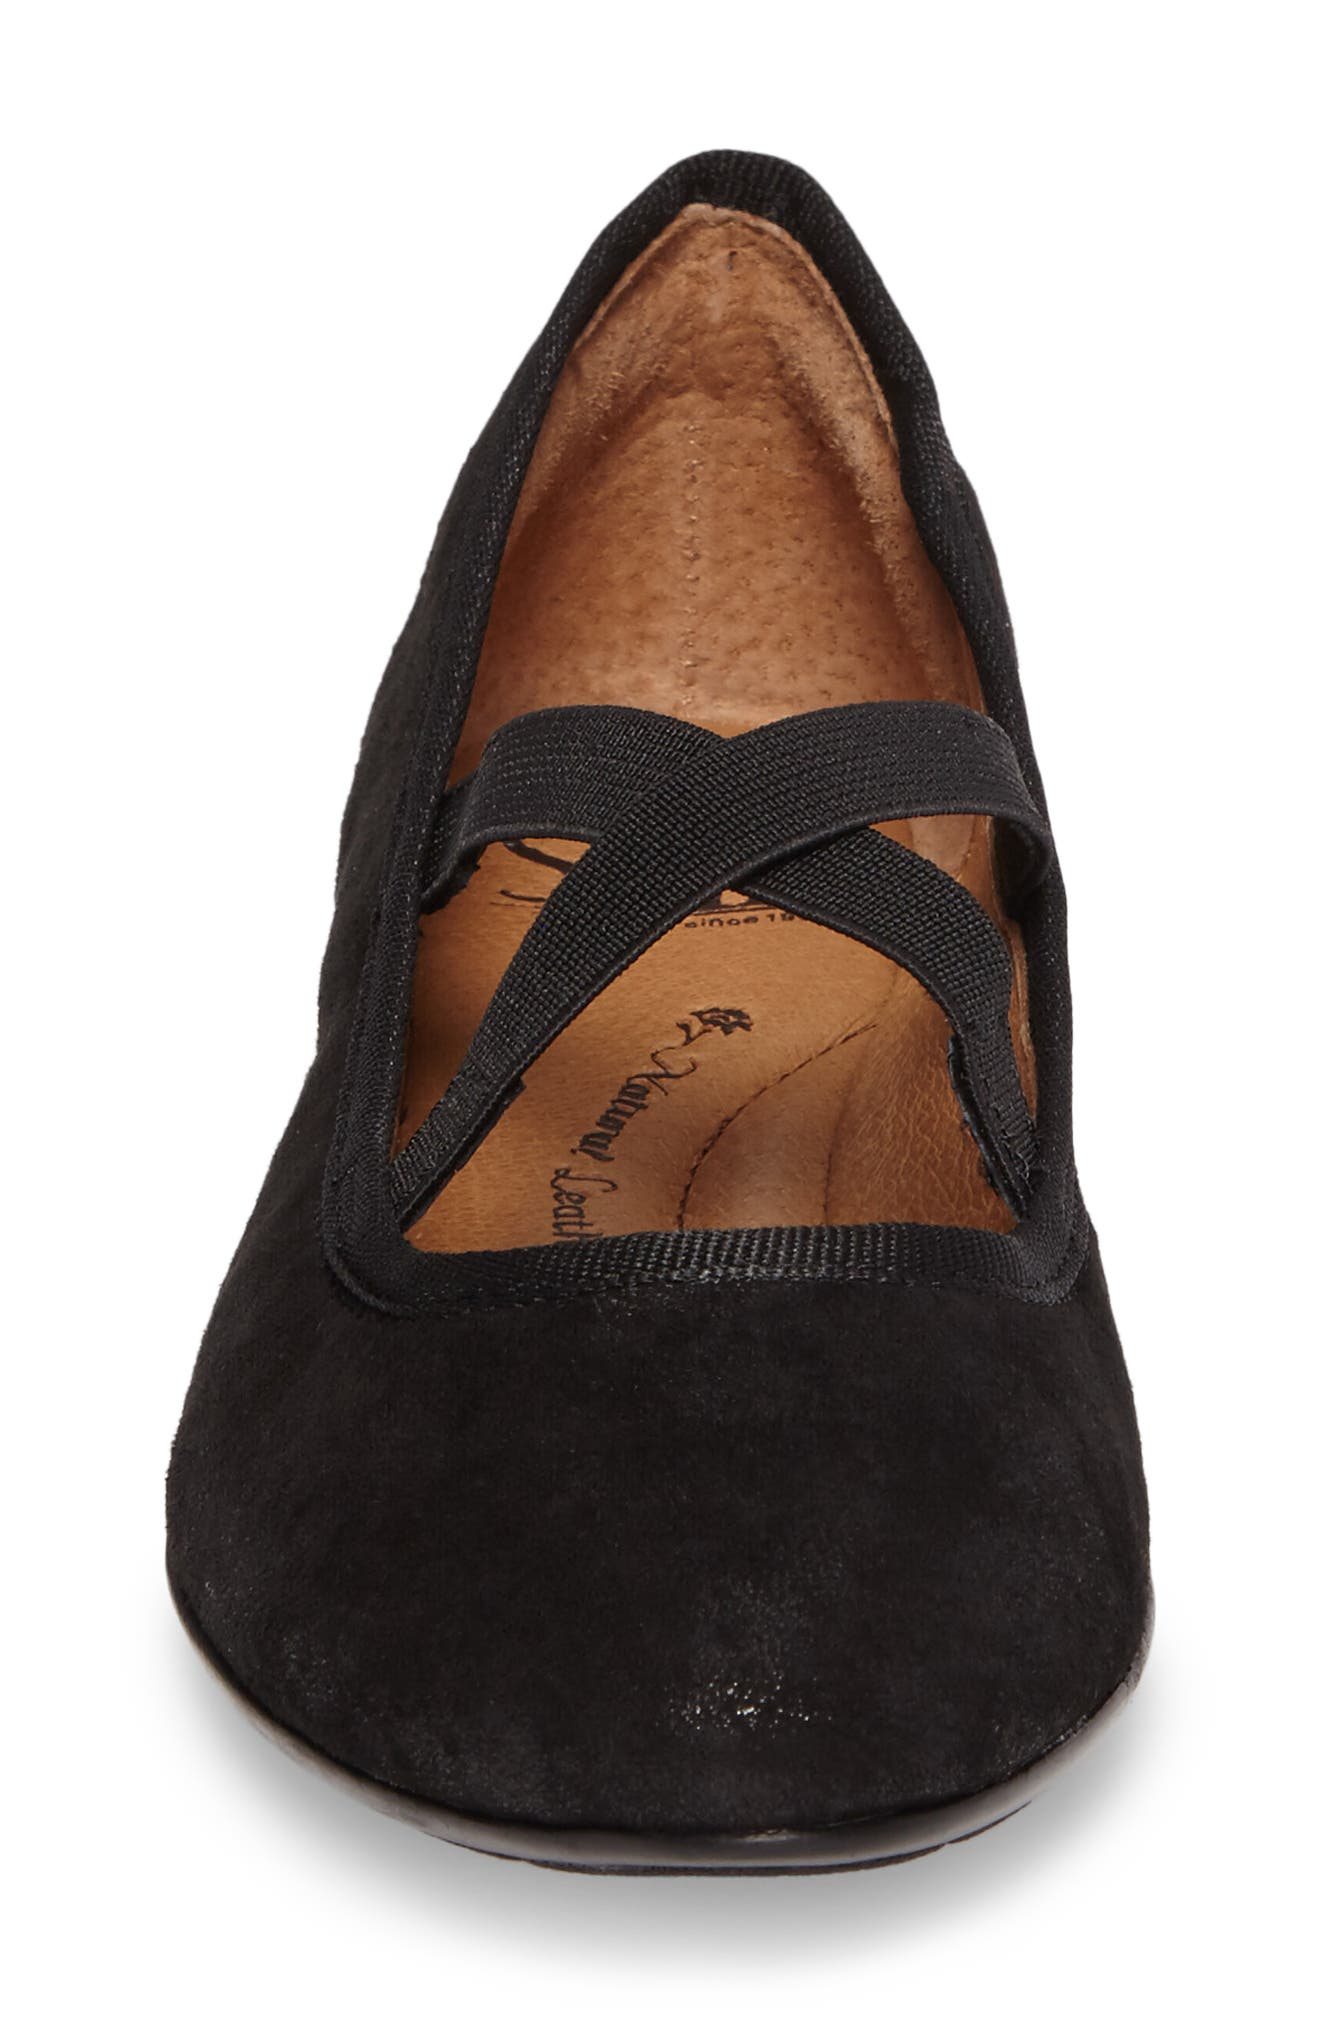 Barris Ballet Flat,                             Alternate thumbnail 4, color,                             001